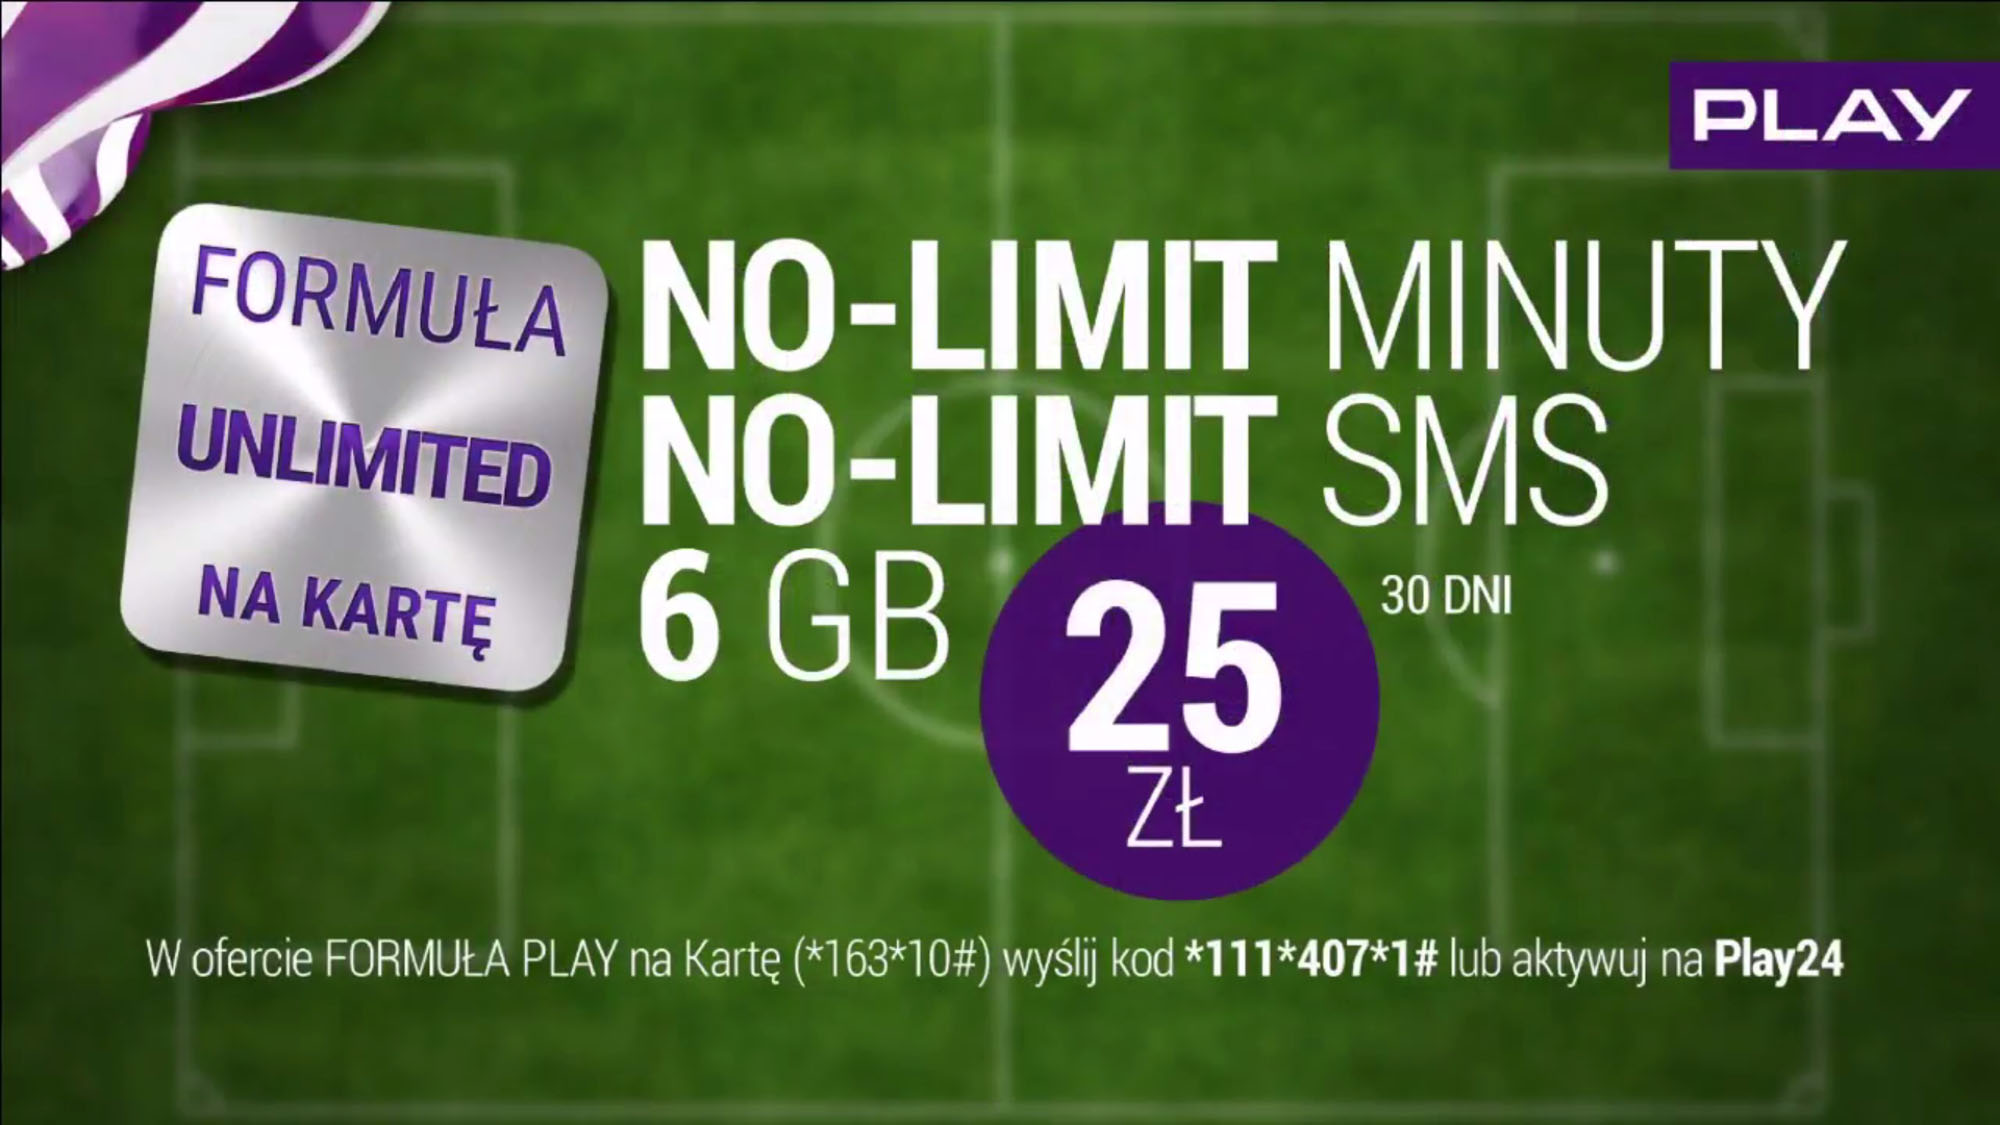 No Limit I 6 Gb Za 25 Zl Formula Unlimited Na Karte W Play